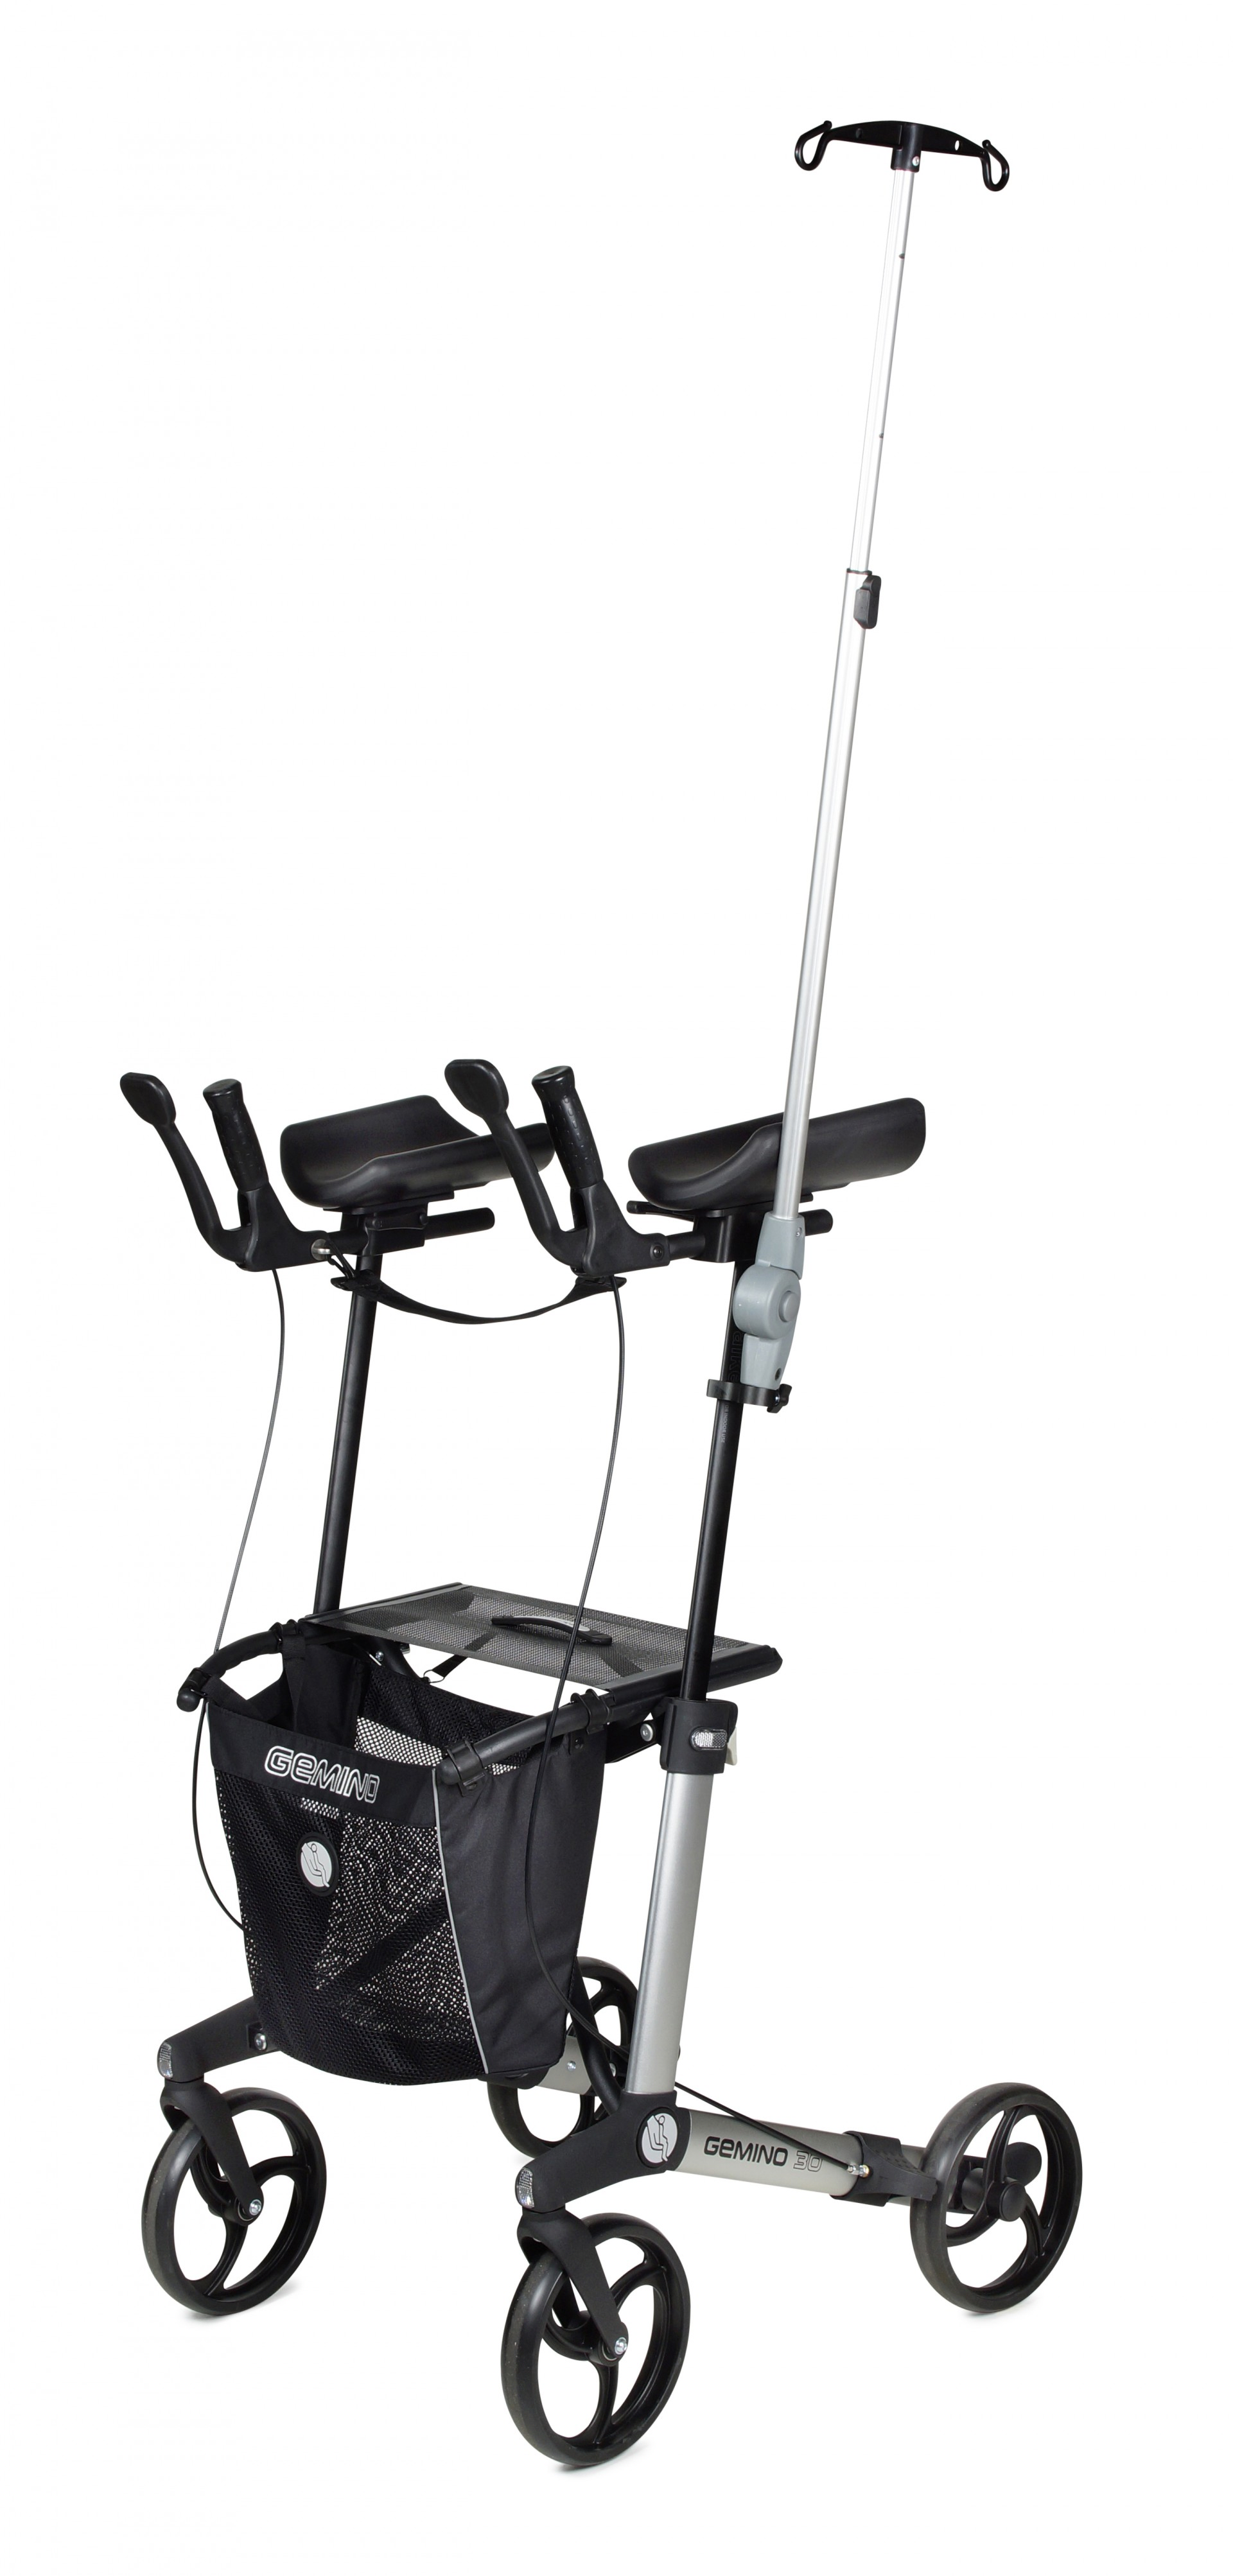 Infuushouder Gemino 30 Walker rollator van Sunrise Medical